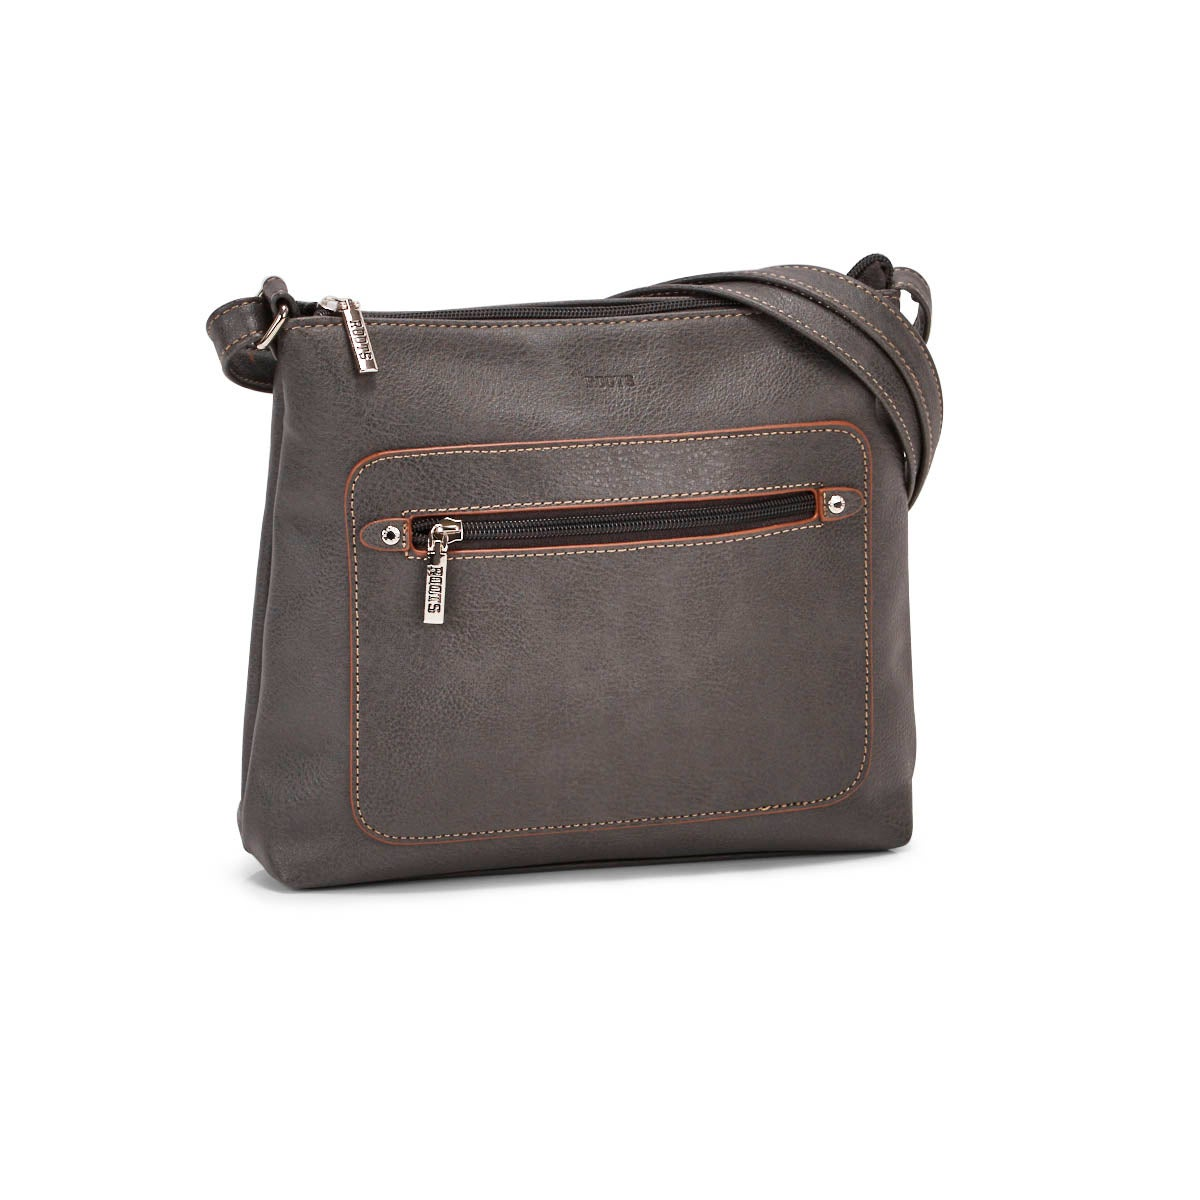 Lds Roots73 grey painted edge crossbody